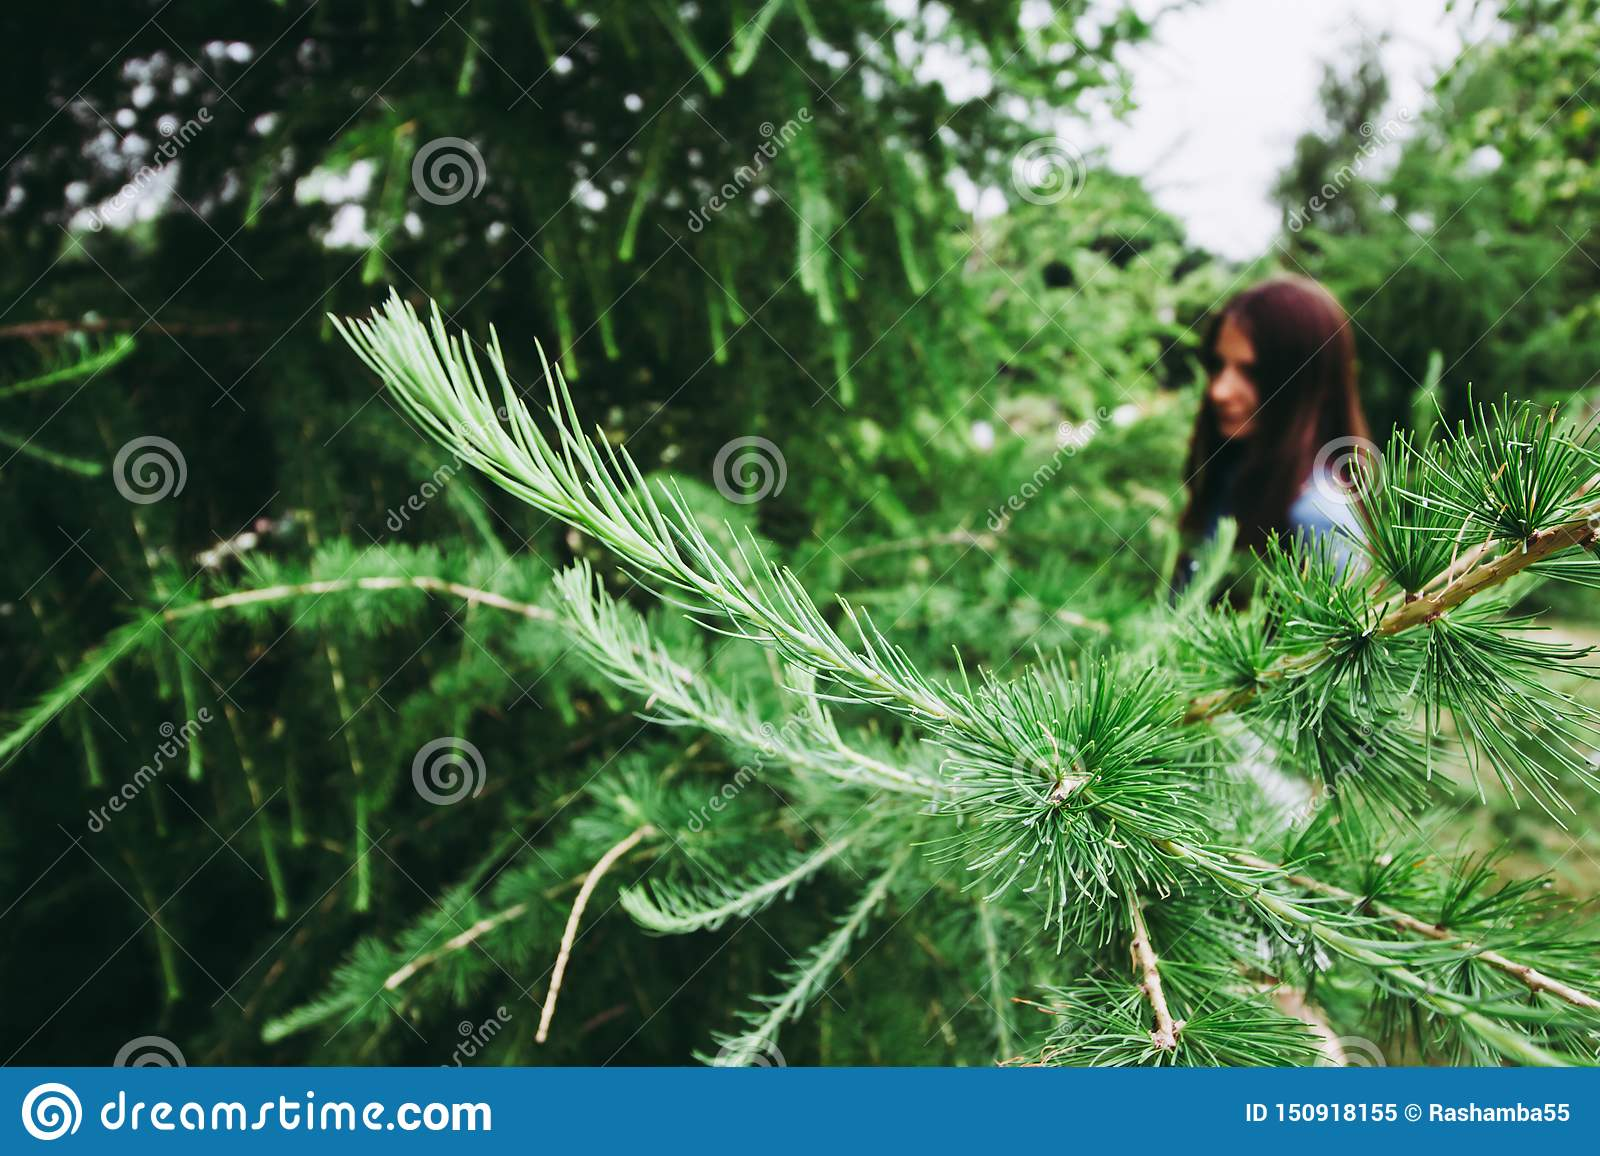 Green pine branches on the bokeh background of girl